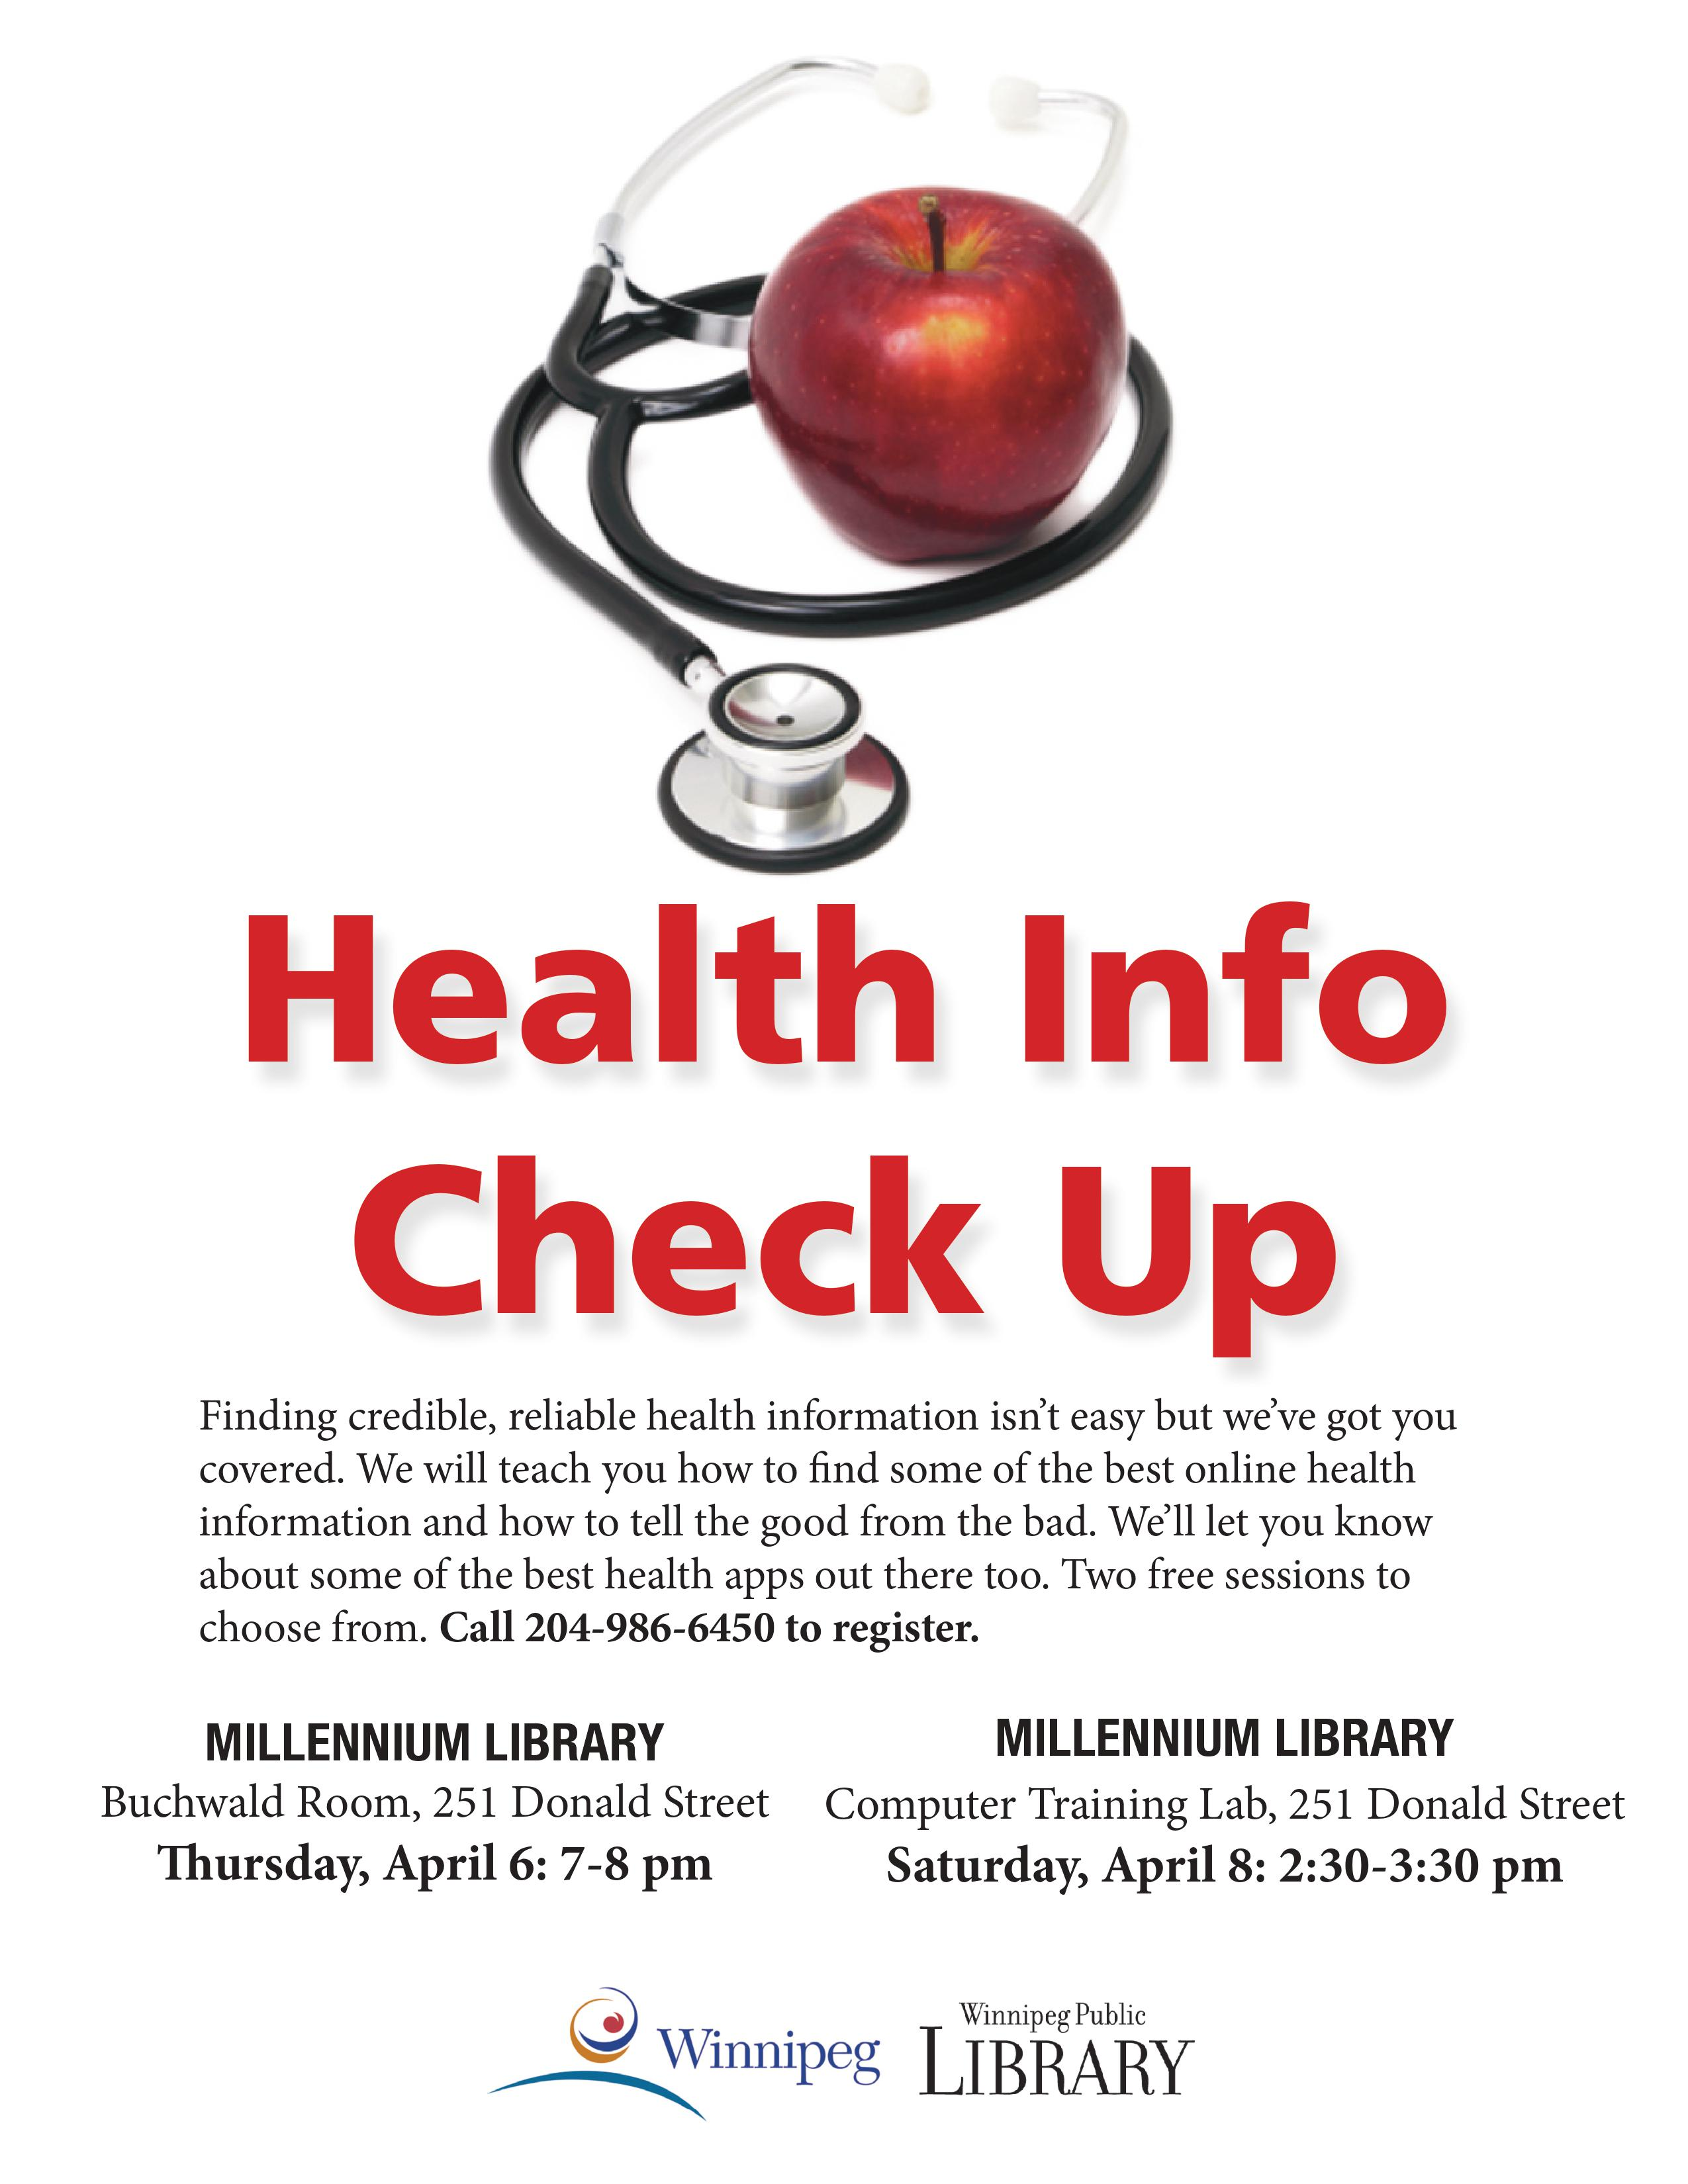 Health Info Check up Program April 6 and April 8 2